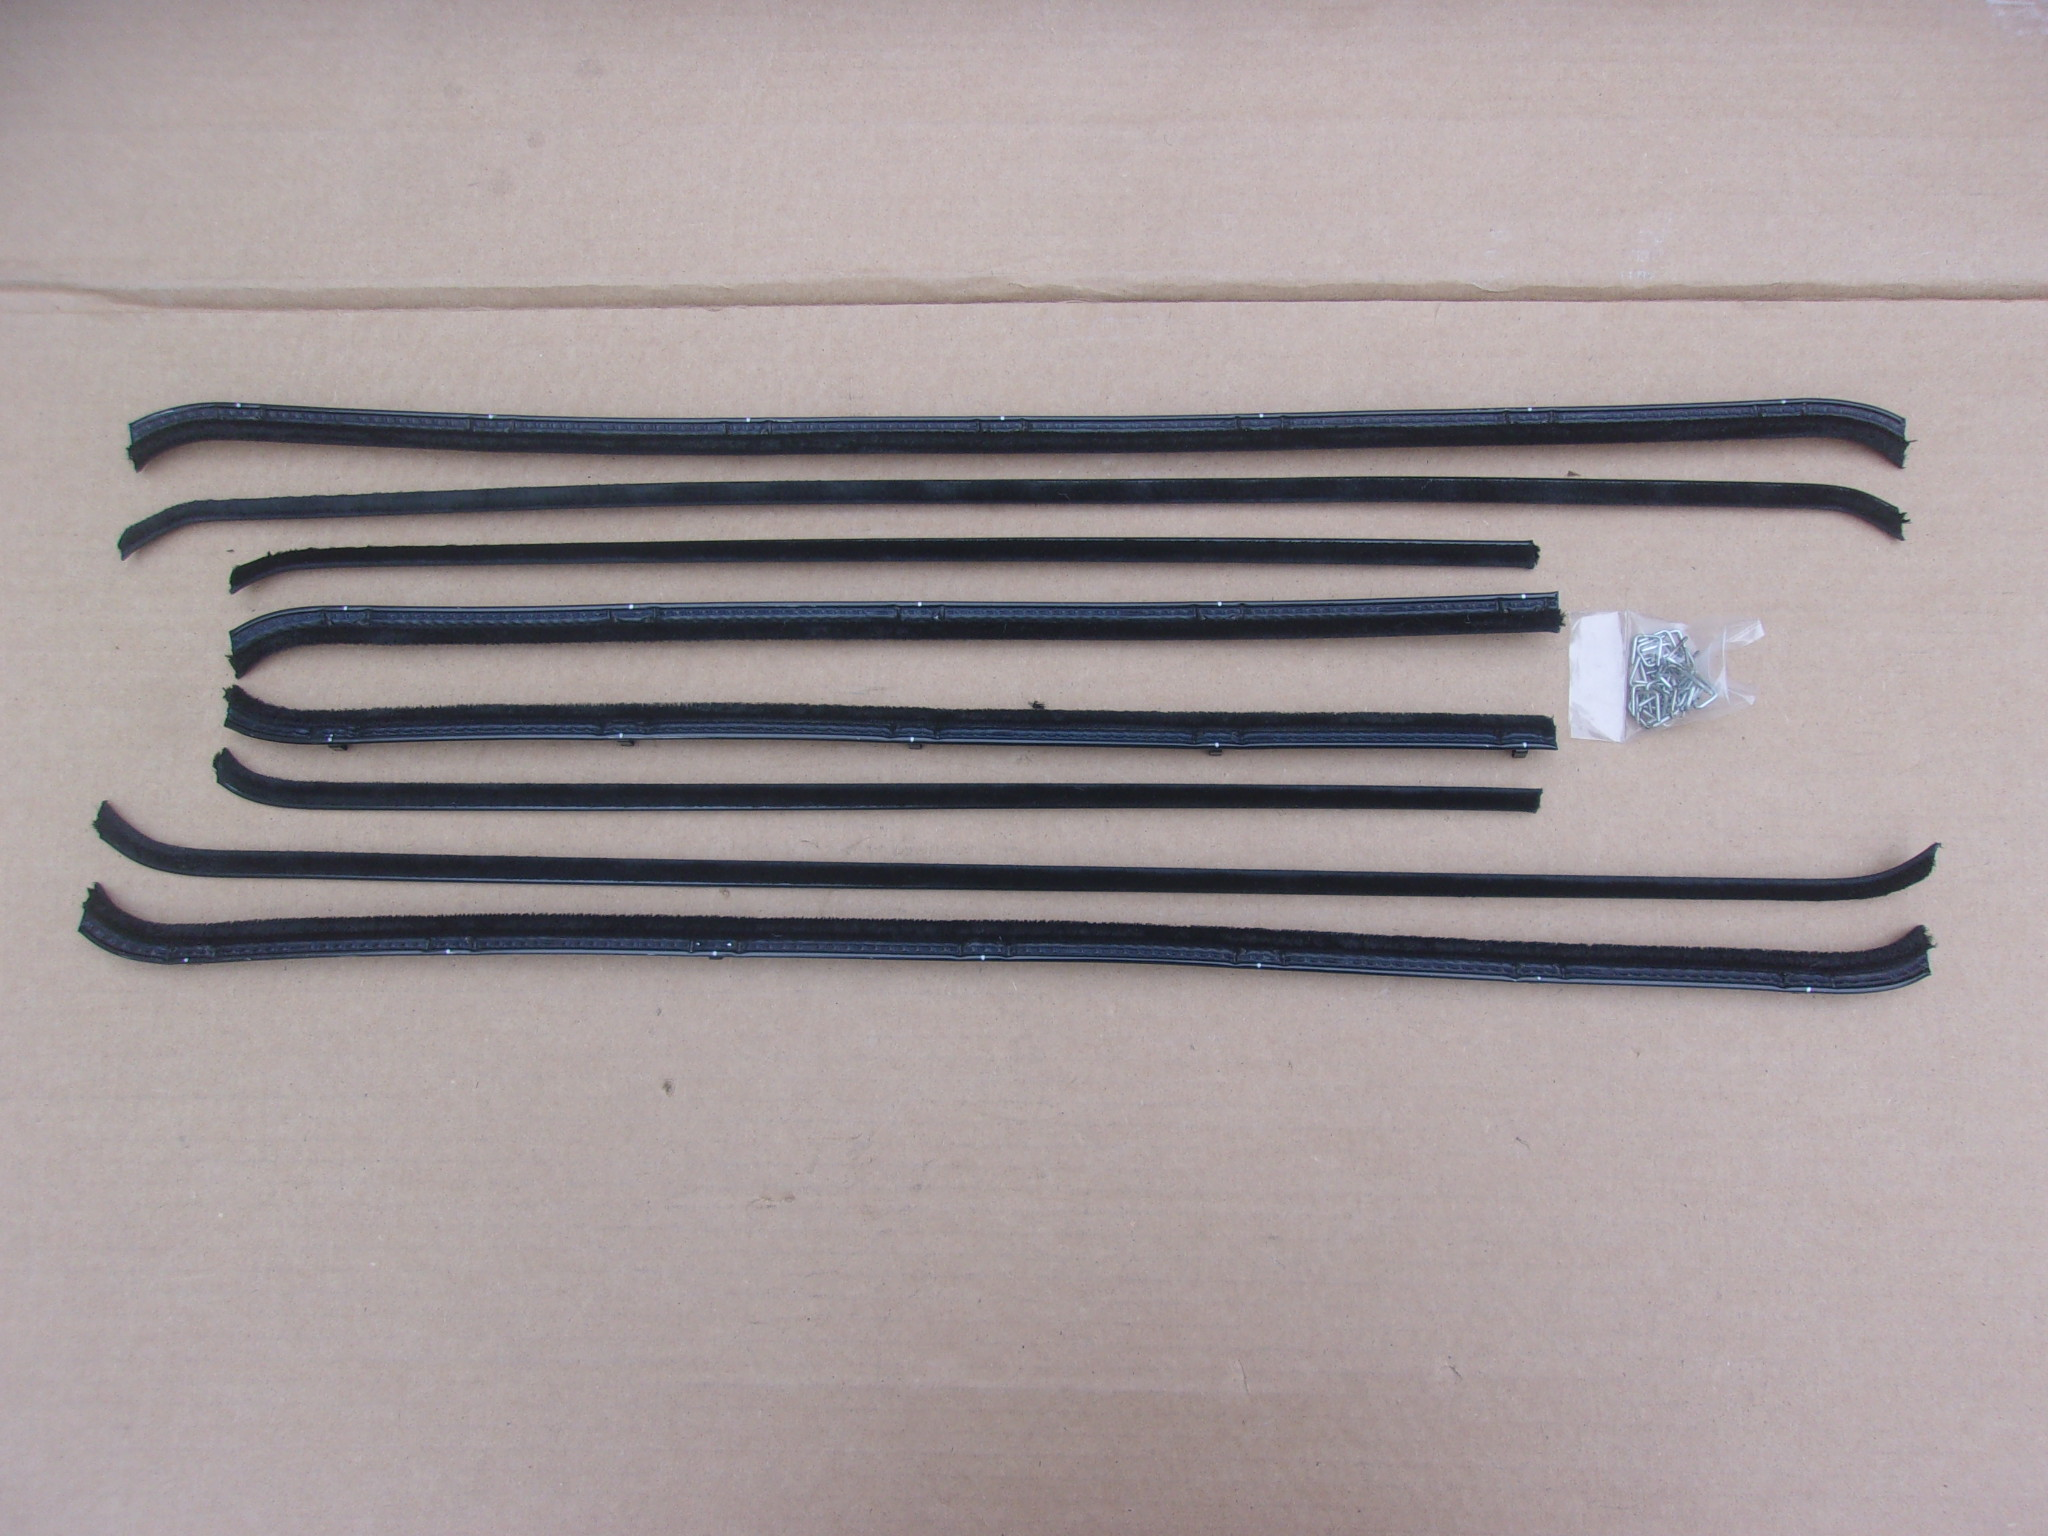 57-59 PLYMOUTH DODGE 4 DR SEDAN BELT CATWHISKERS